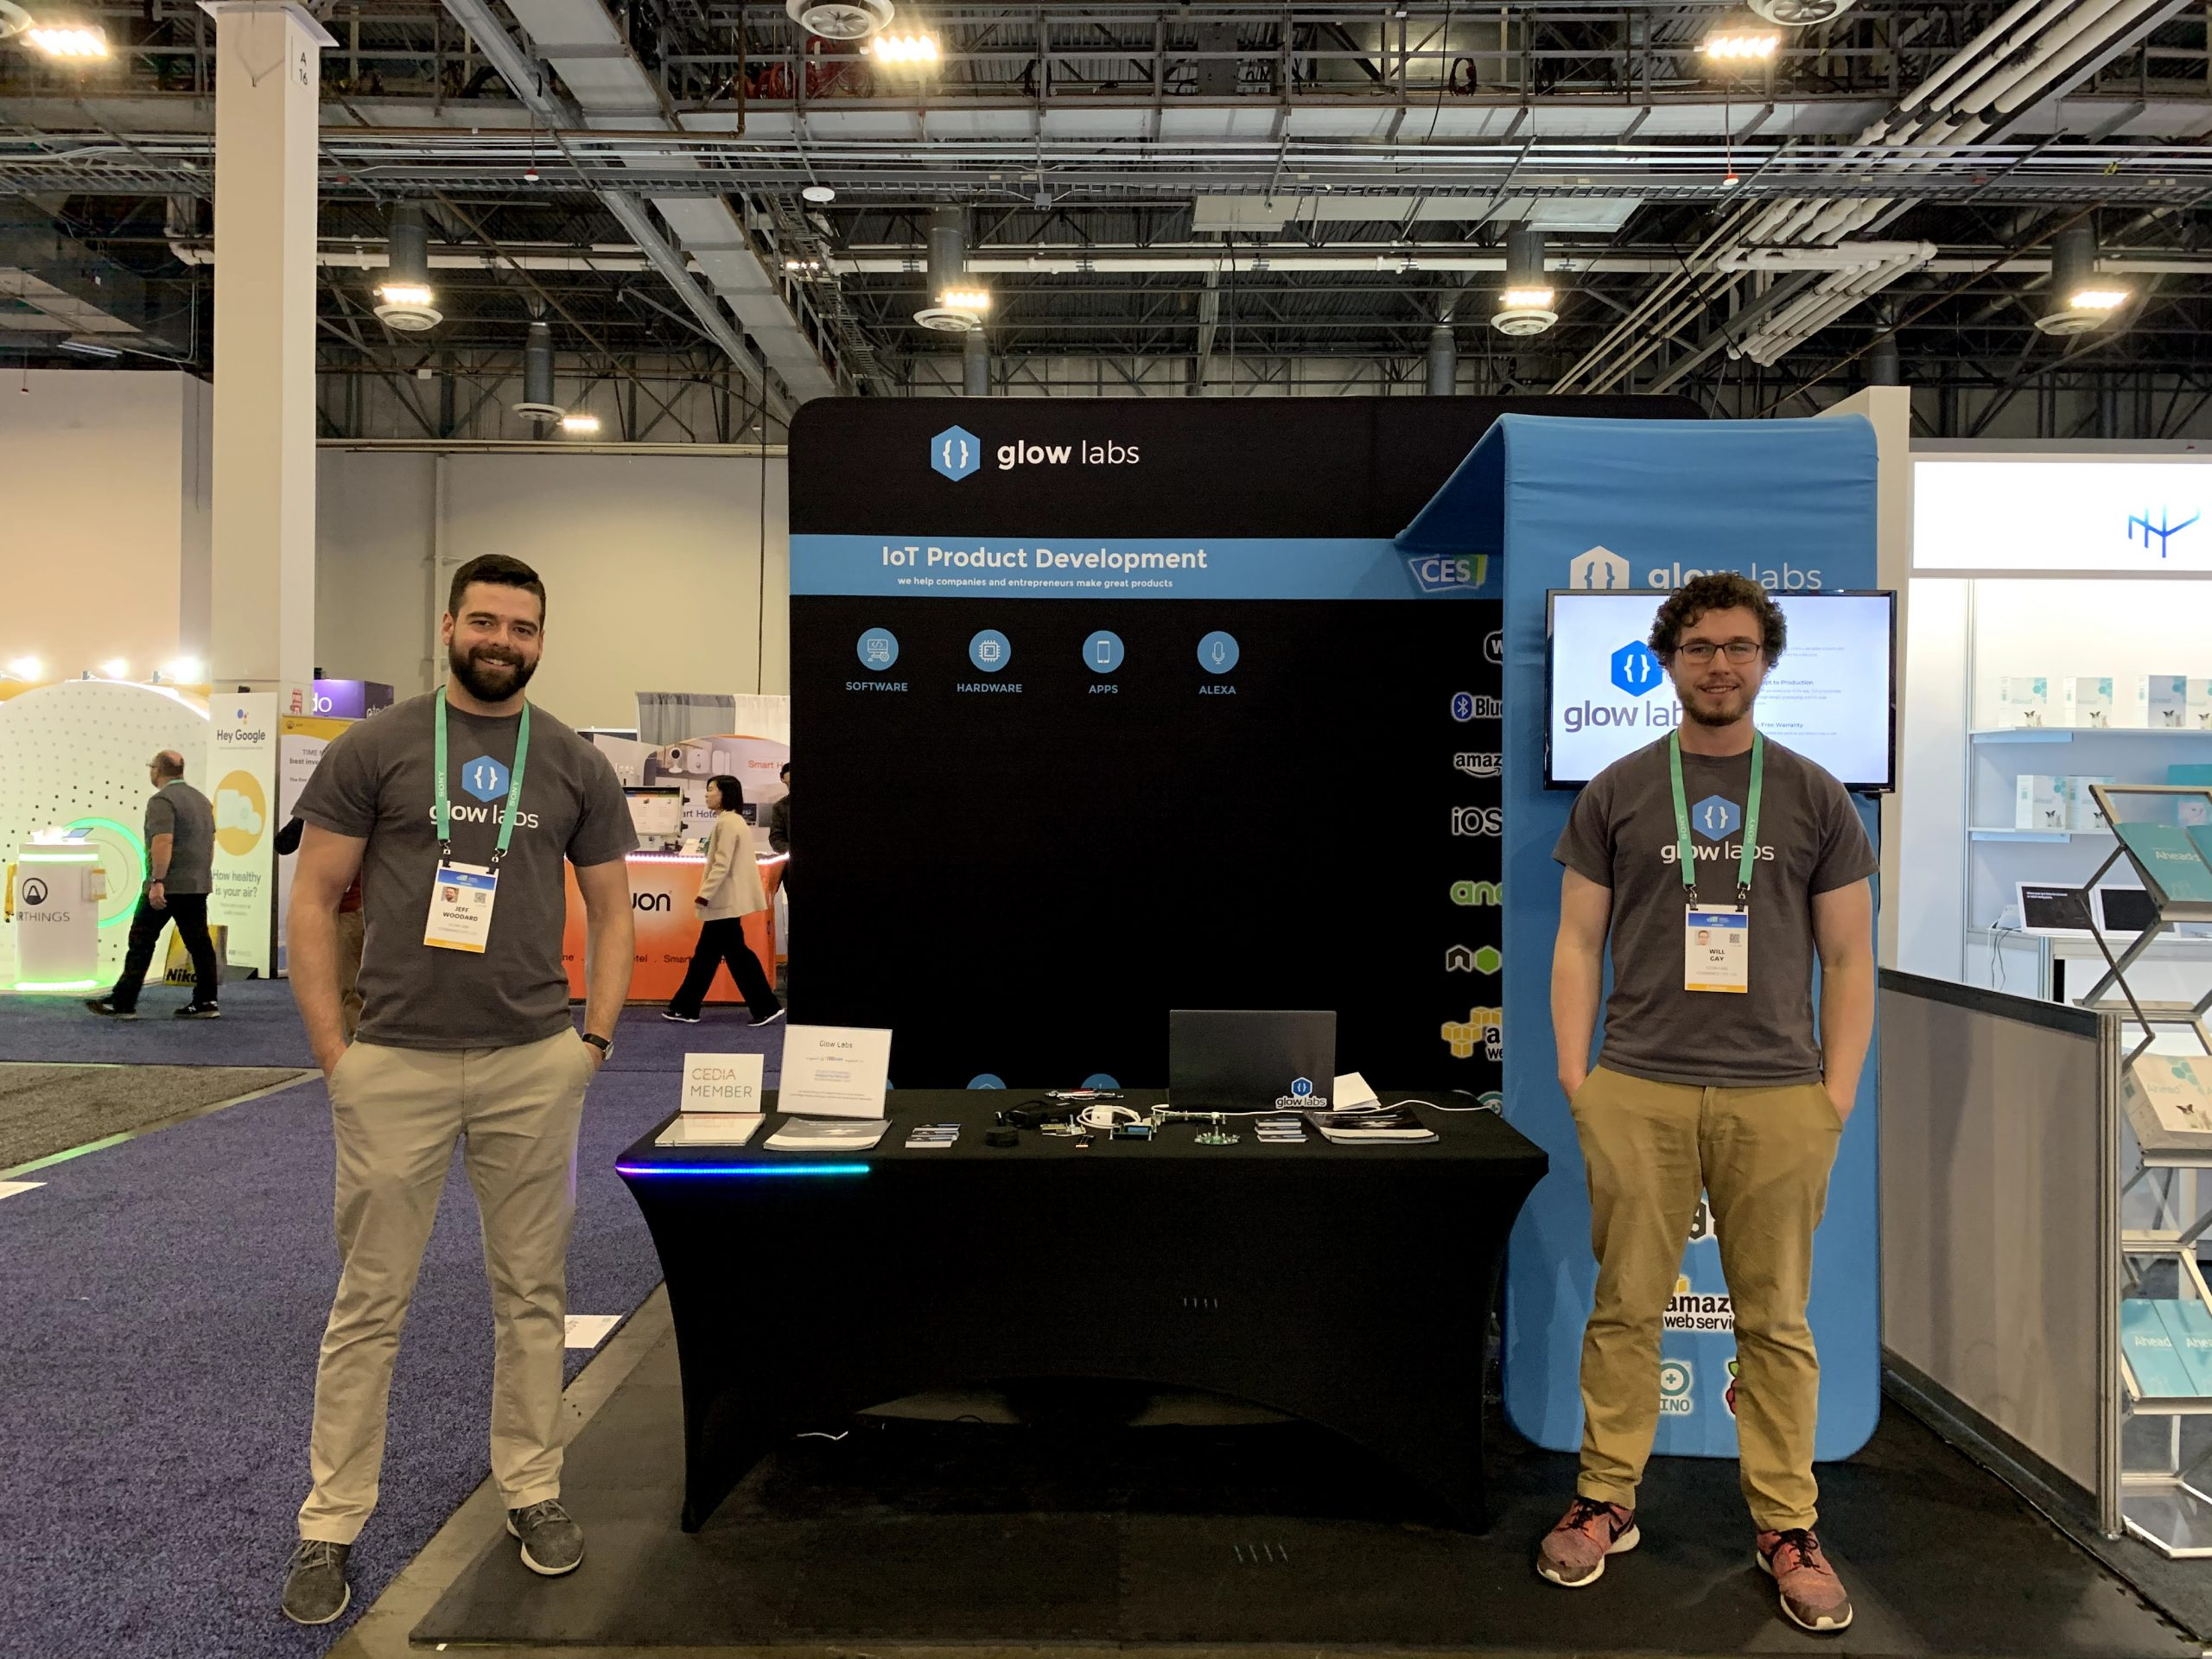 Glow Labs' CES 2020 IoT Product Development Booth